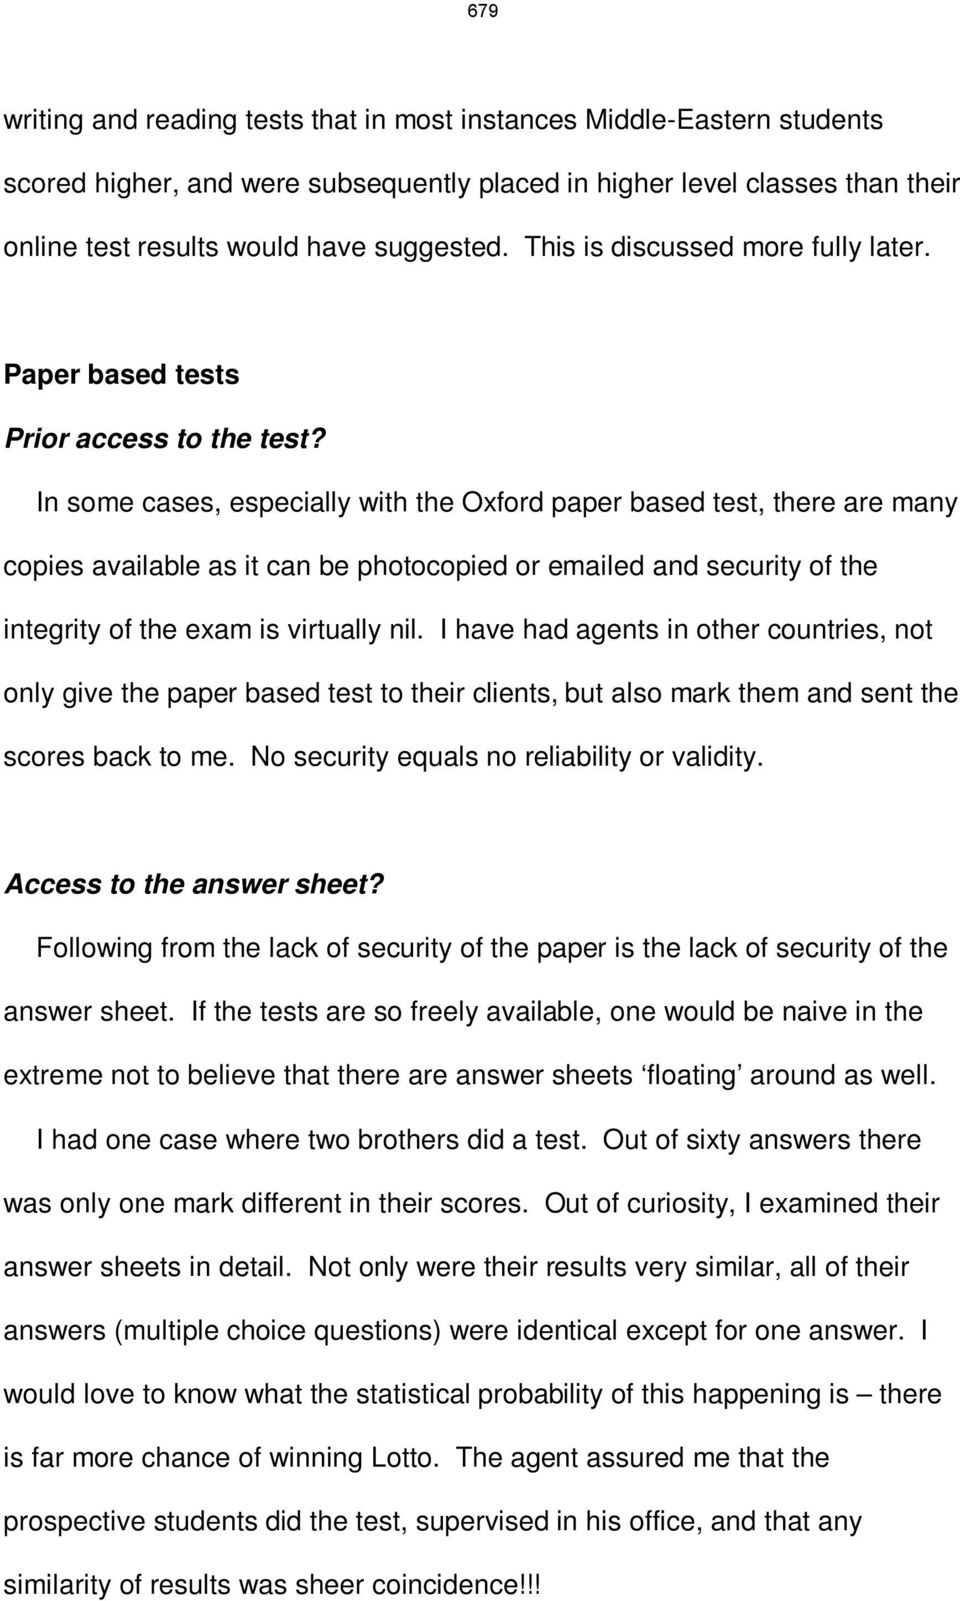 In some cases, especially with the Oxford paper based test, there are many copies available as it can be photocopied or emailed and security of the integrity of the exam is virtually nil.